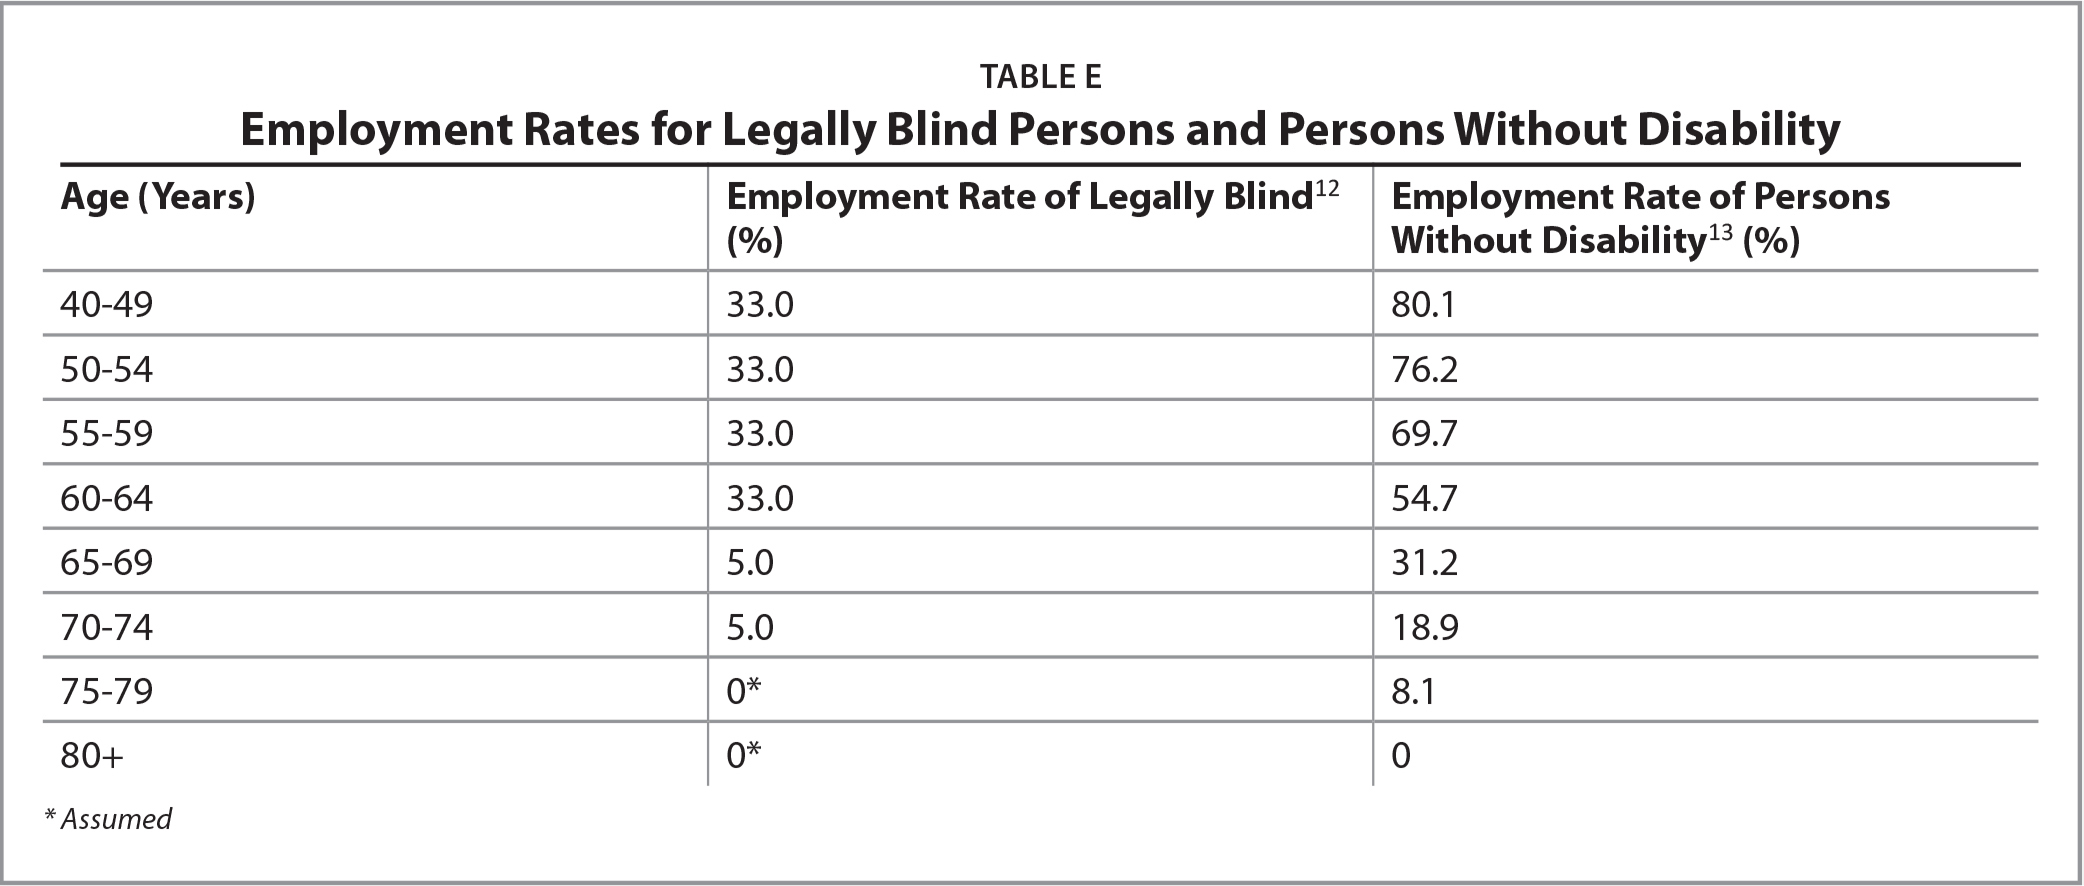 Employment Rates for Legally Blind Persons and Persons Without Disability